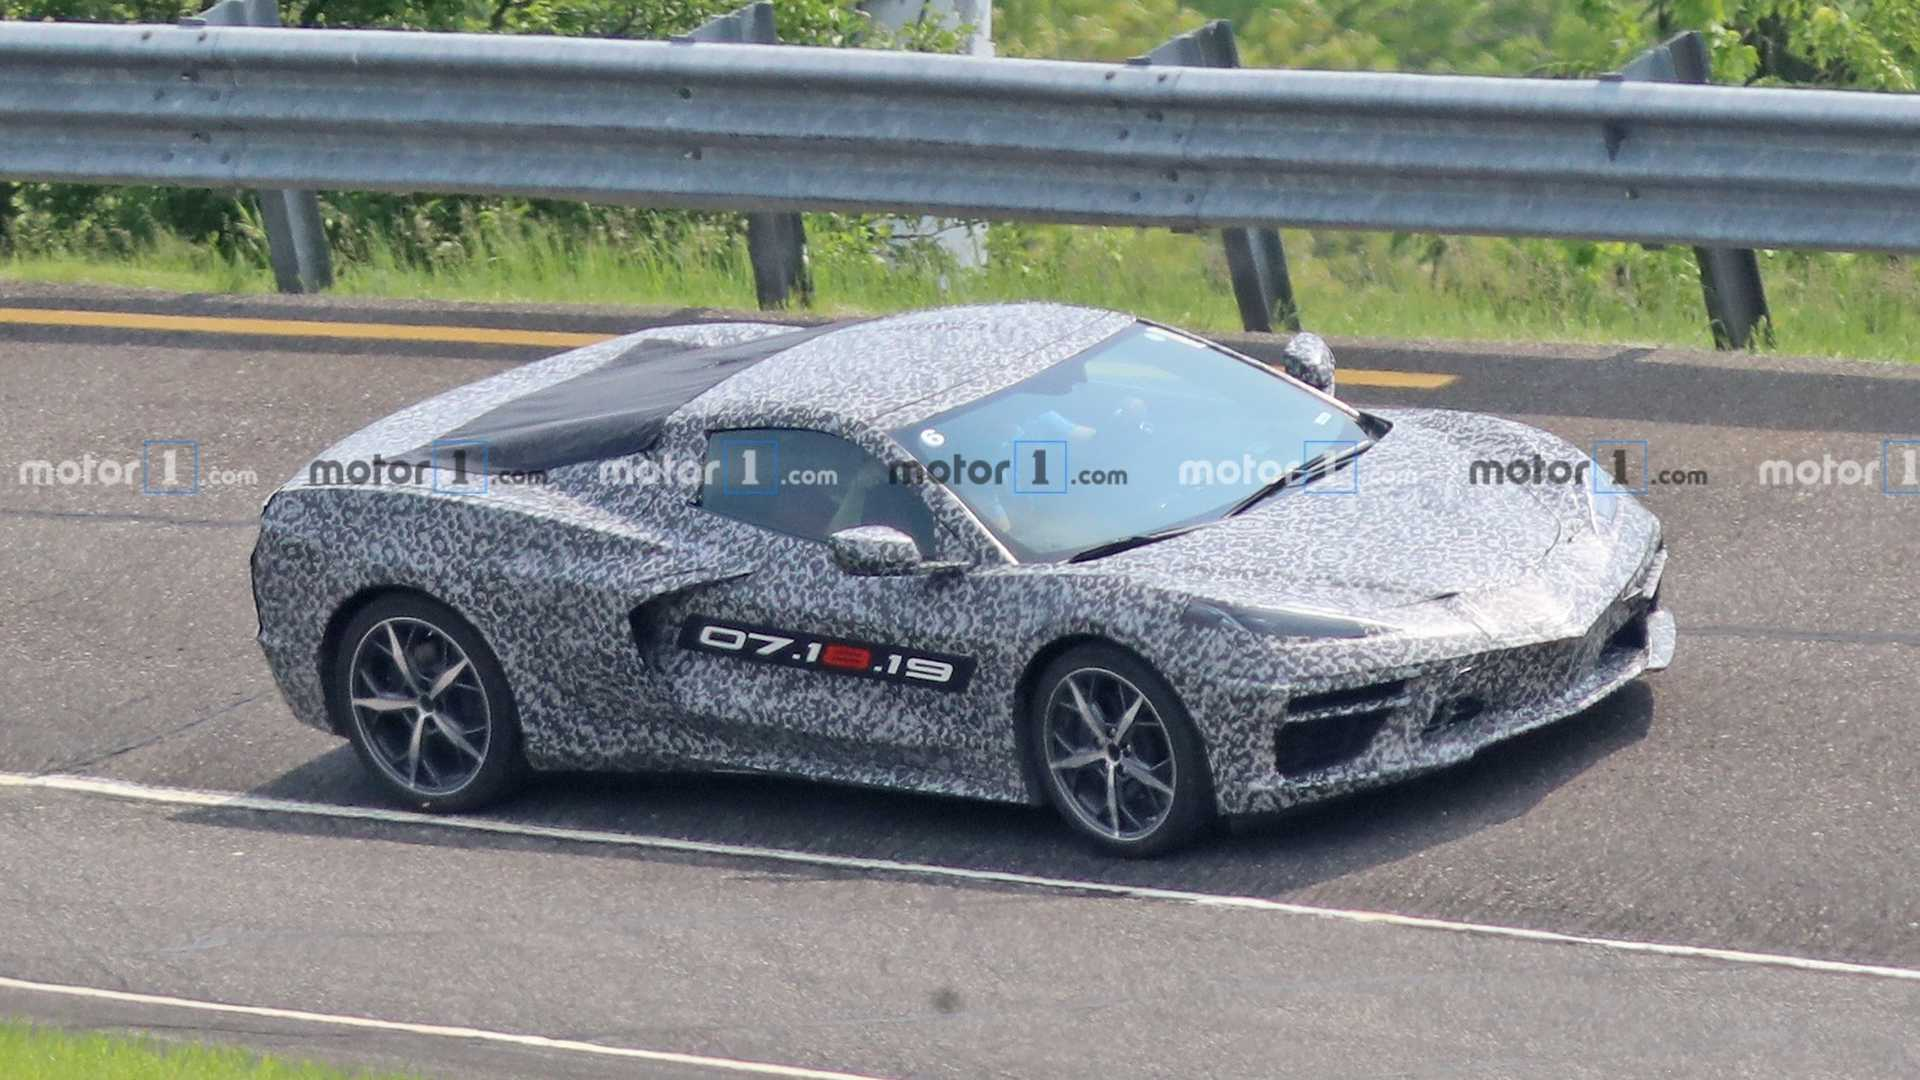 2020 Chevy Corvette C8 Debuts Today: Watch The Unveiling Live Here